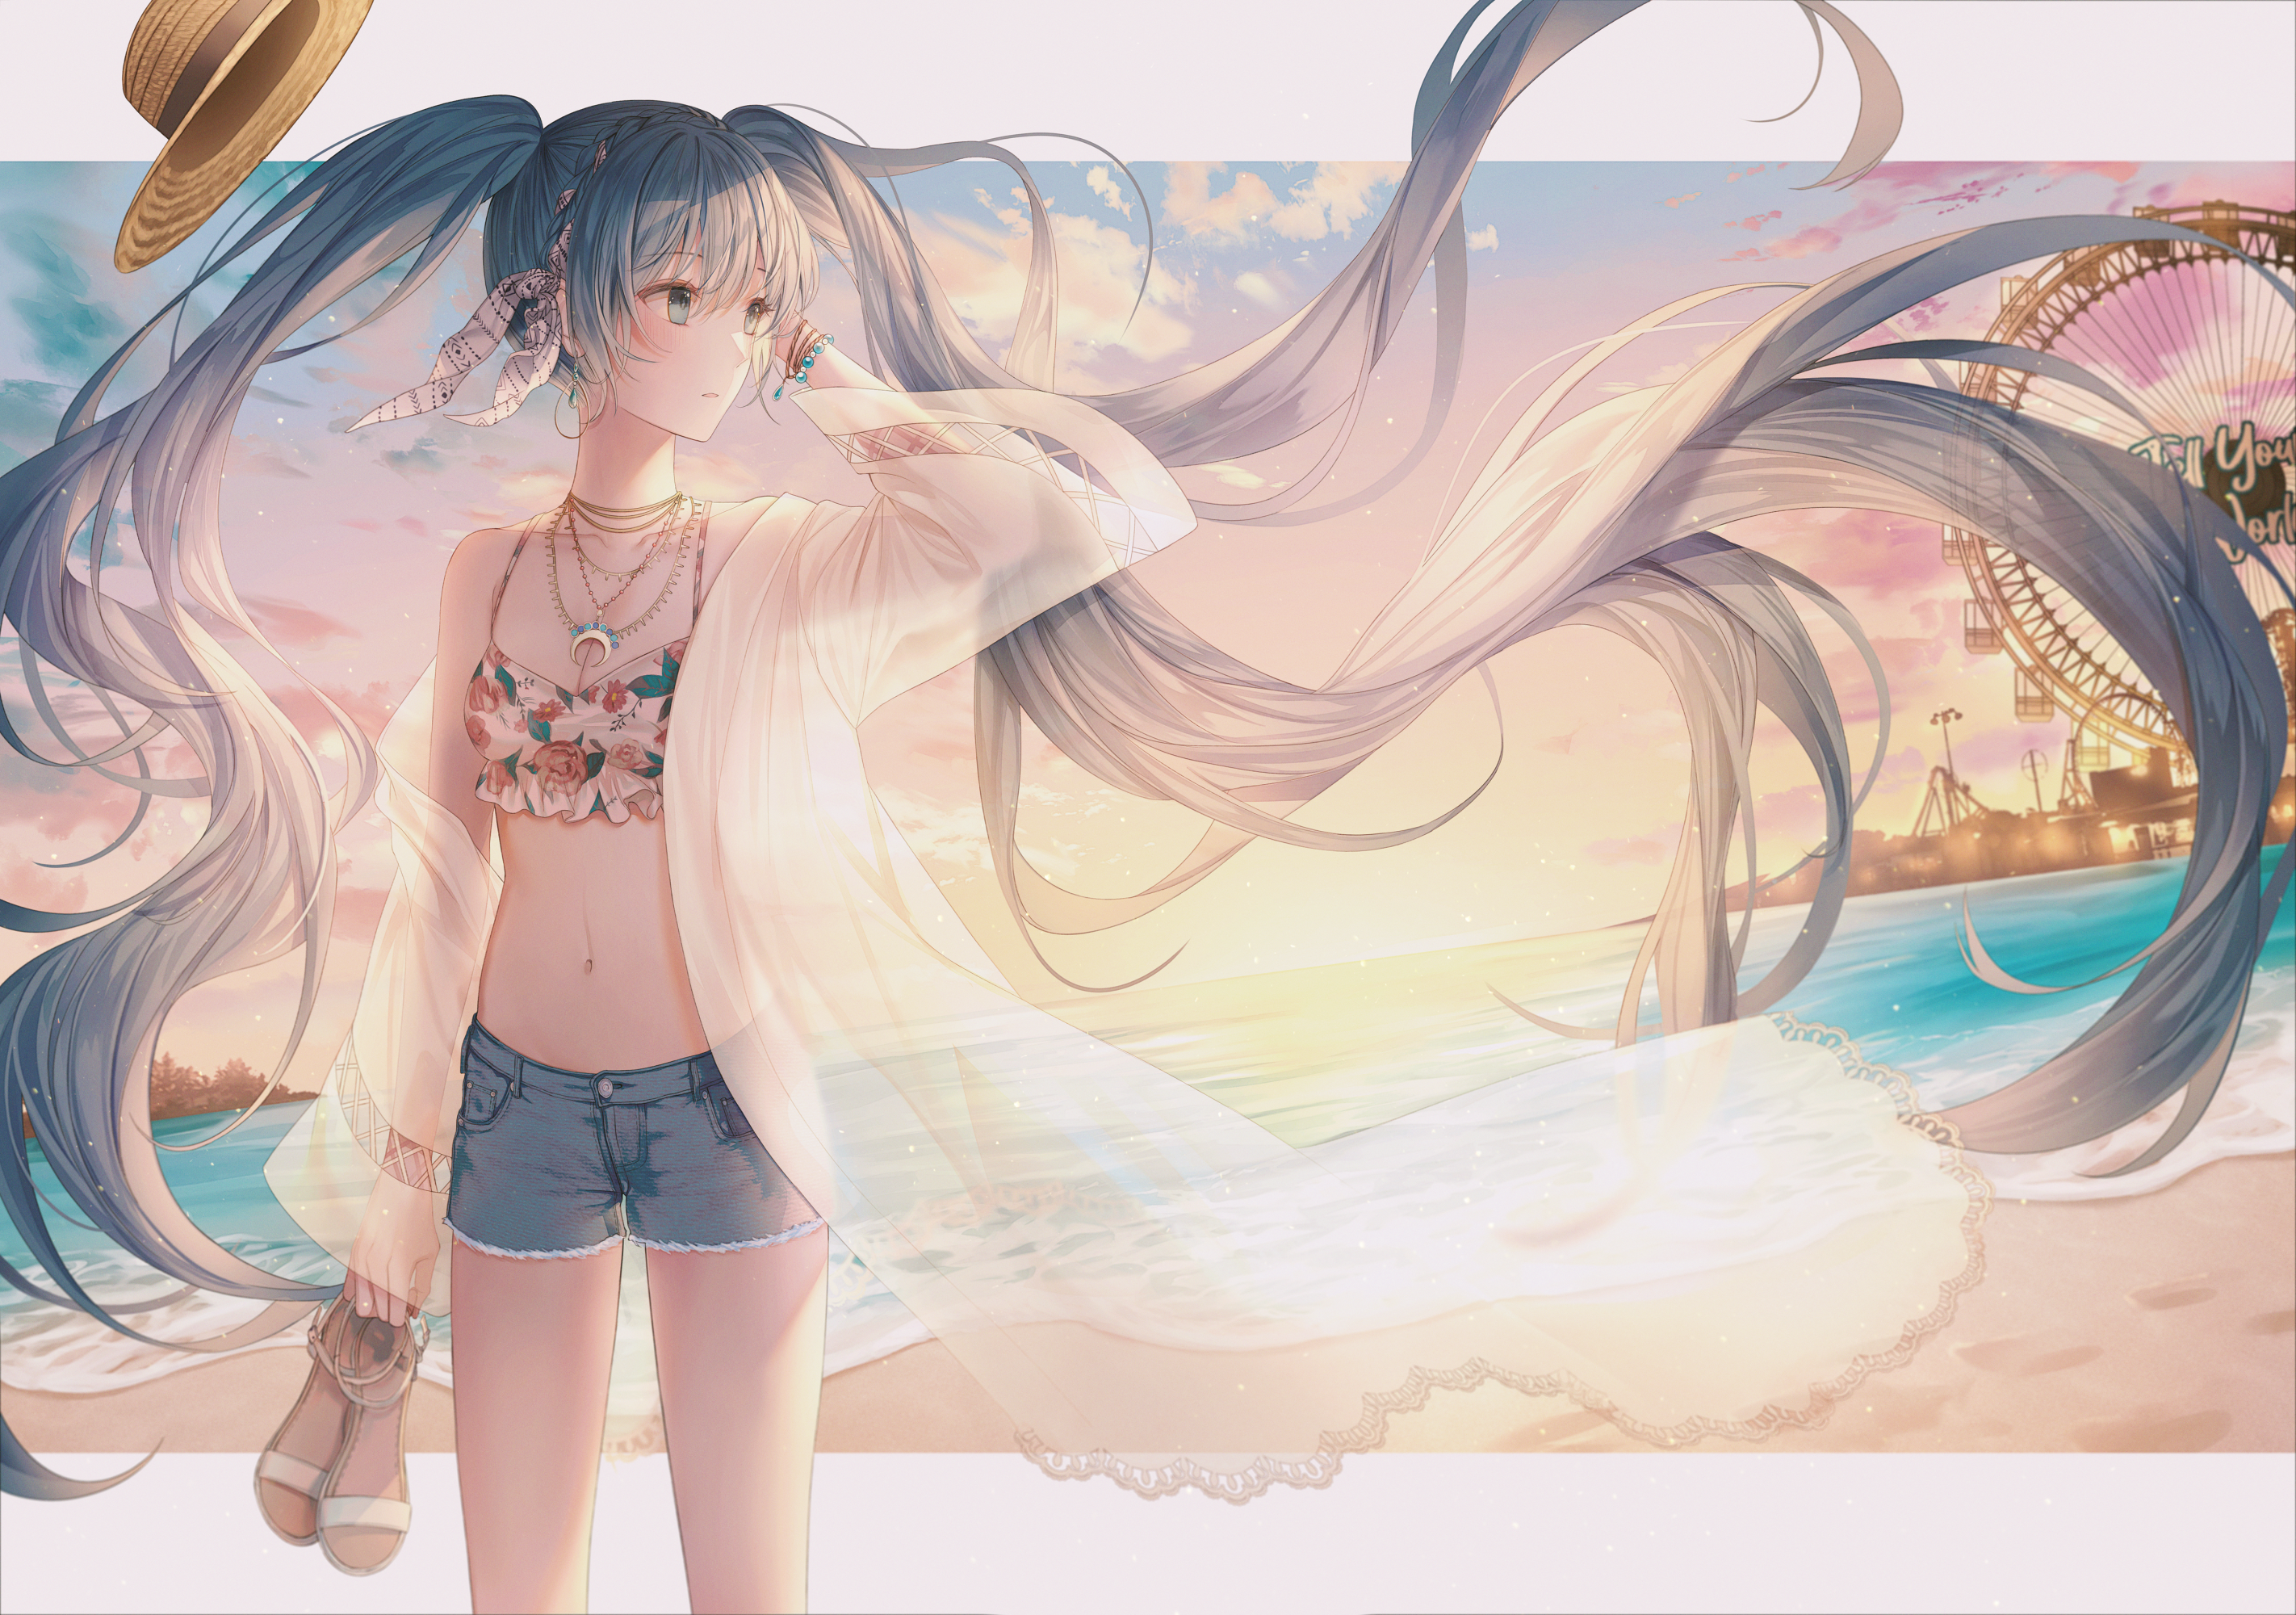 Vocaloid Hatsune Miku Long Hair Blue Hair Short Pants Beach Anime Girls Anime Lium Artwork 2844x2000